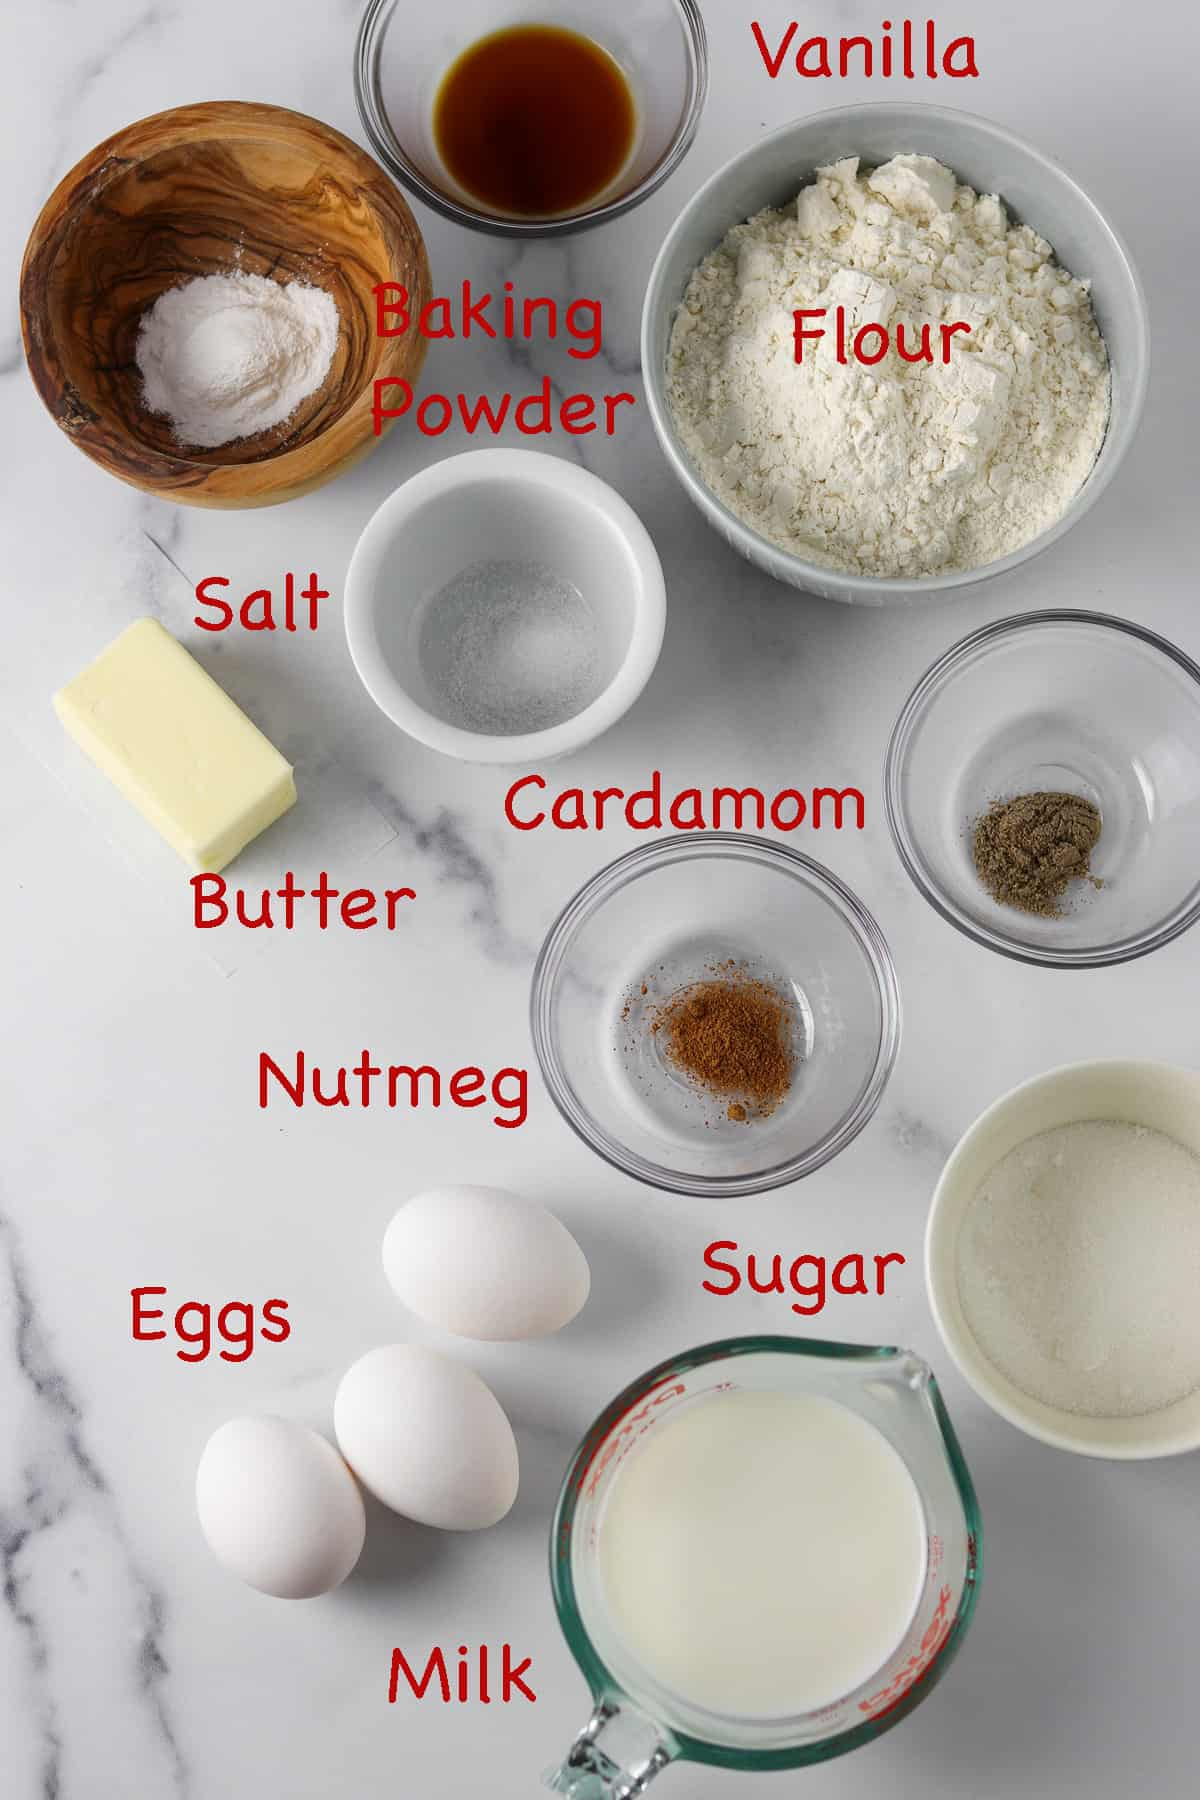 Labeled ingredients for æbleskivers.